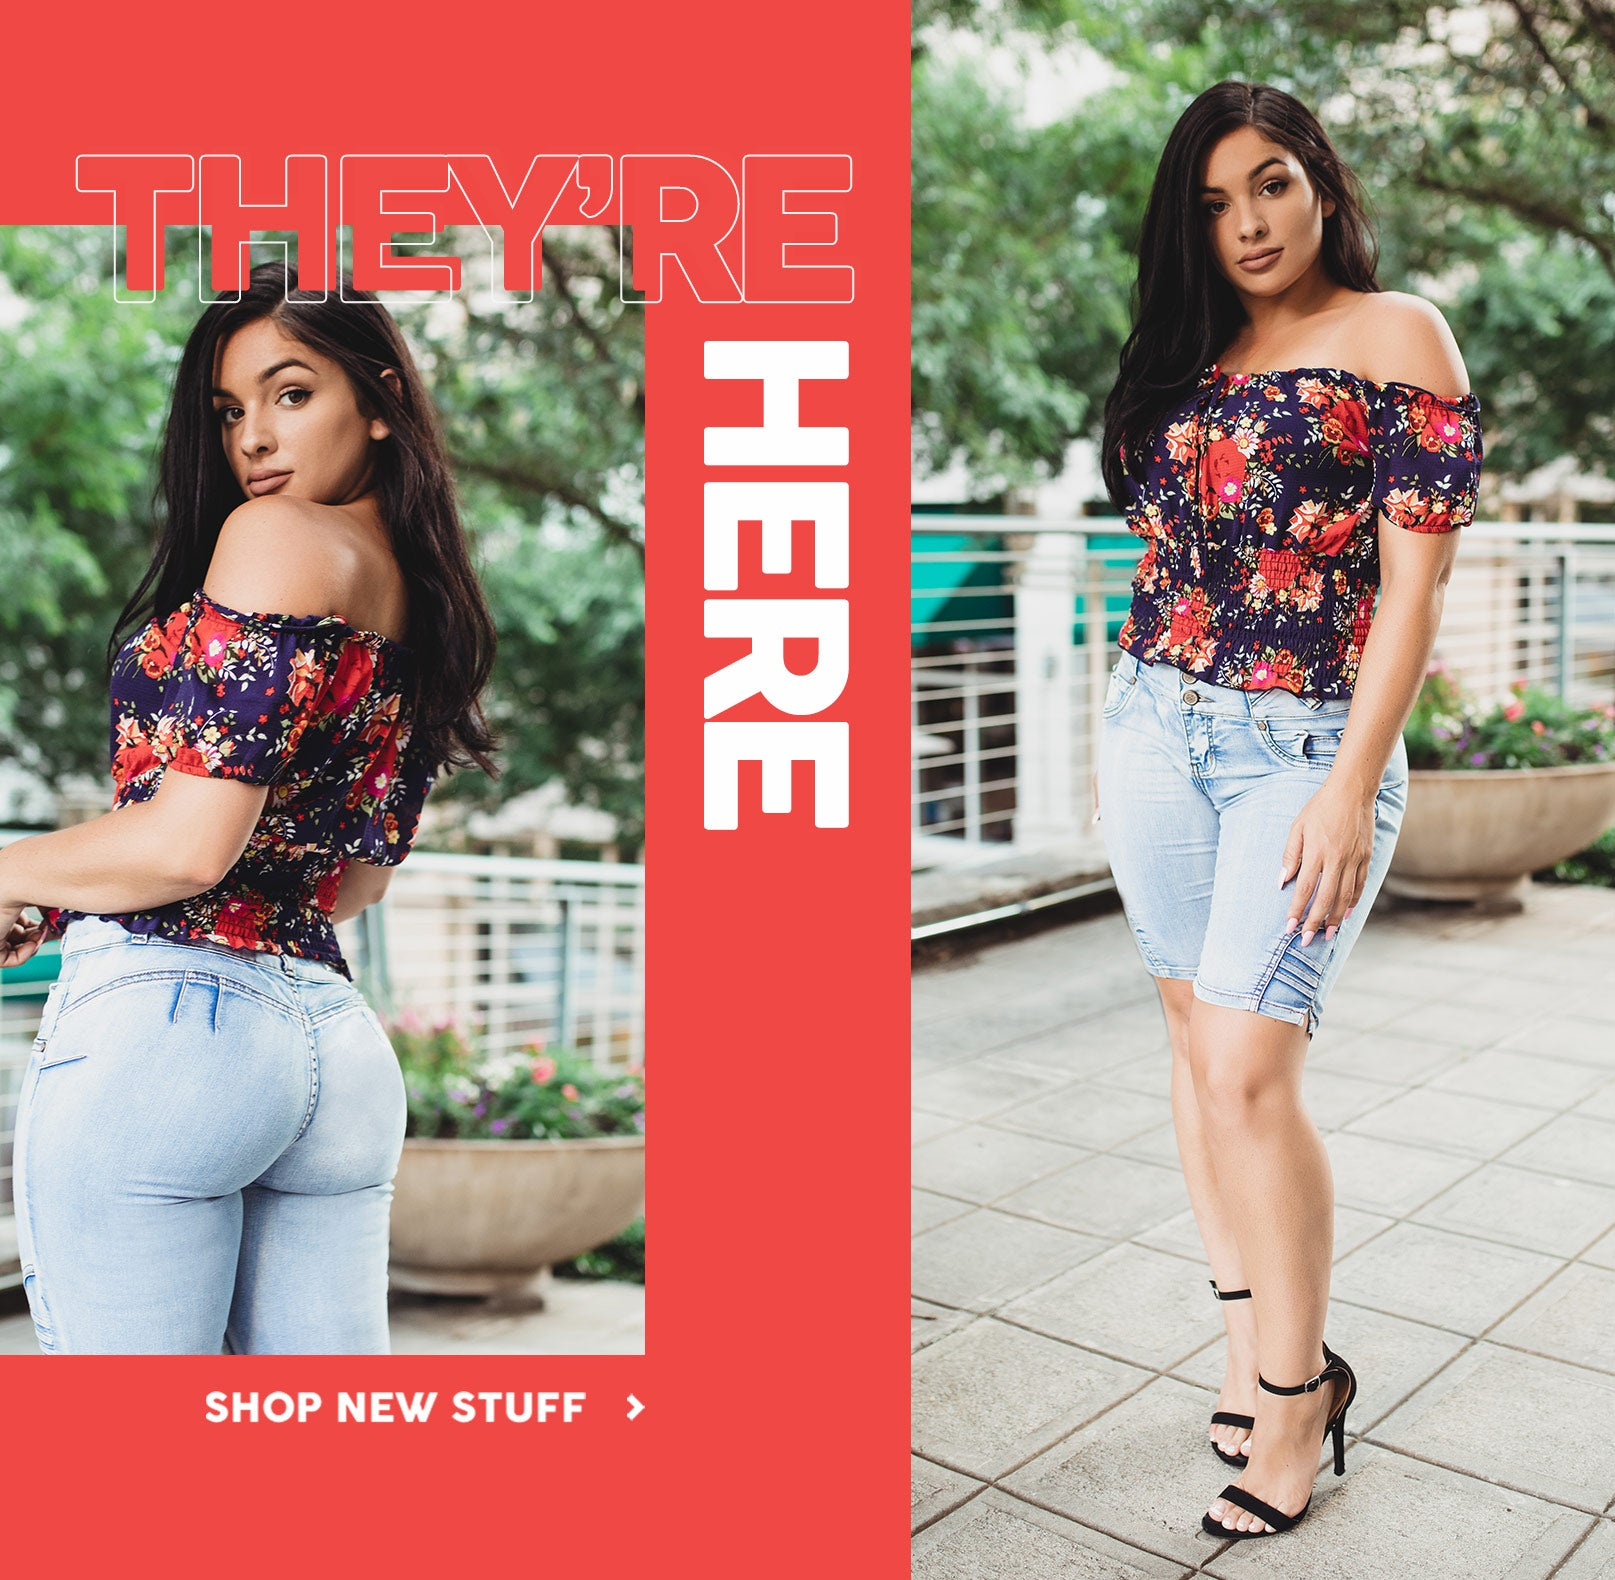 eeebb122d3ab5 Cute Clothes for Juniors - Buy Trendy Fashion Clothing & Shoes